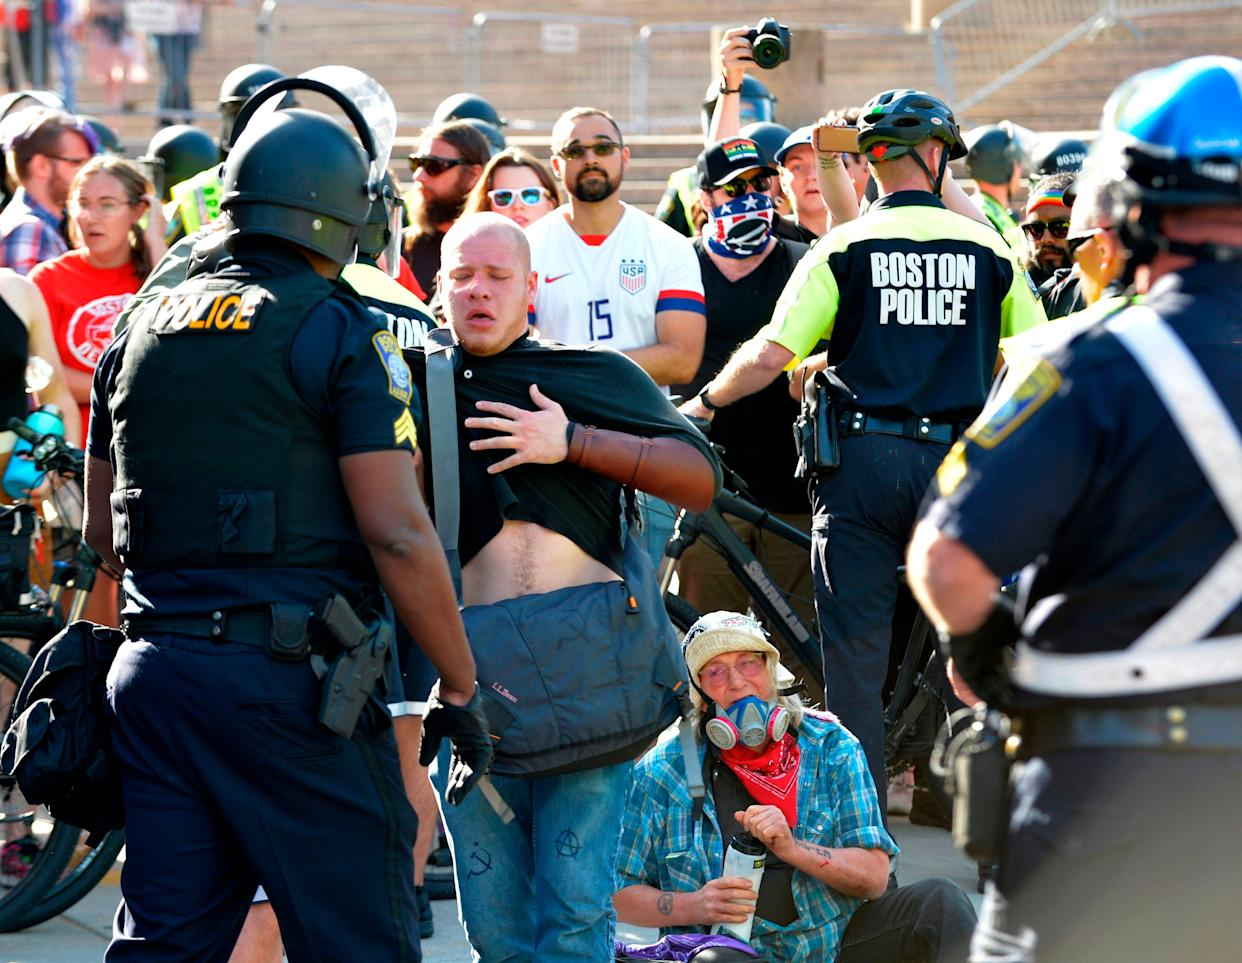 Protesters are overcome after police used pepper spray on anti-parade demonstrators during the